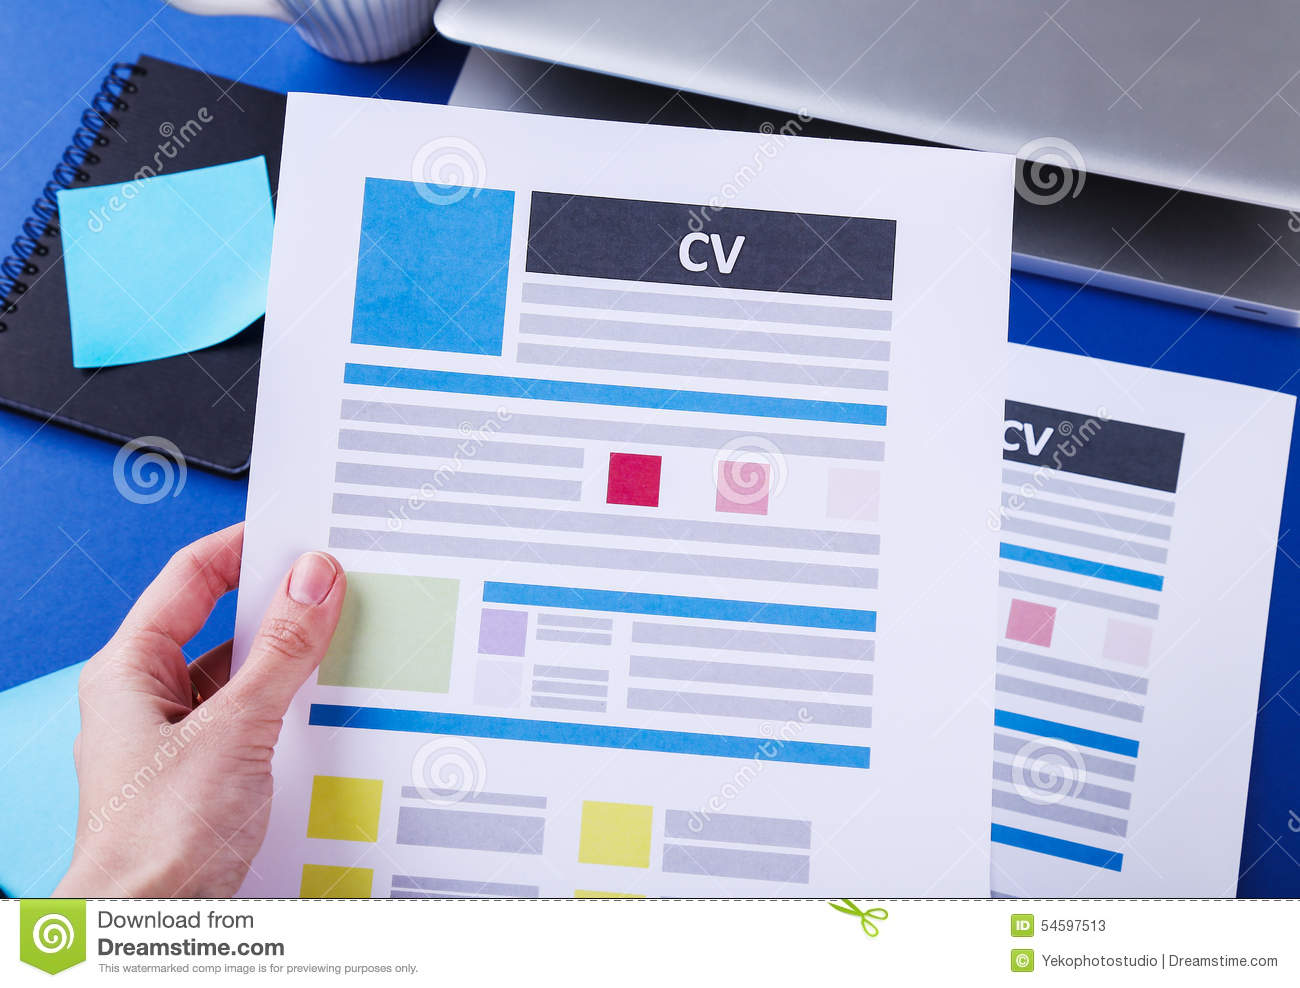 cv on the table stock image  image of business  objects